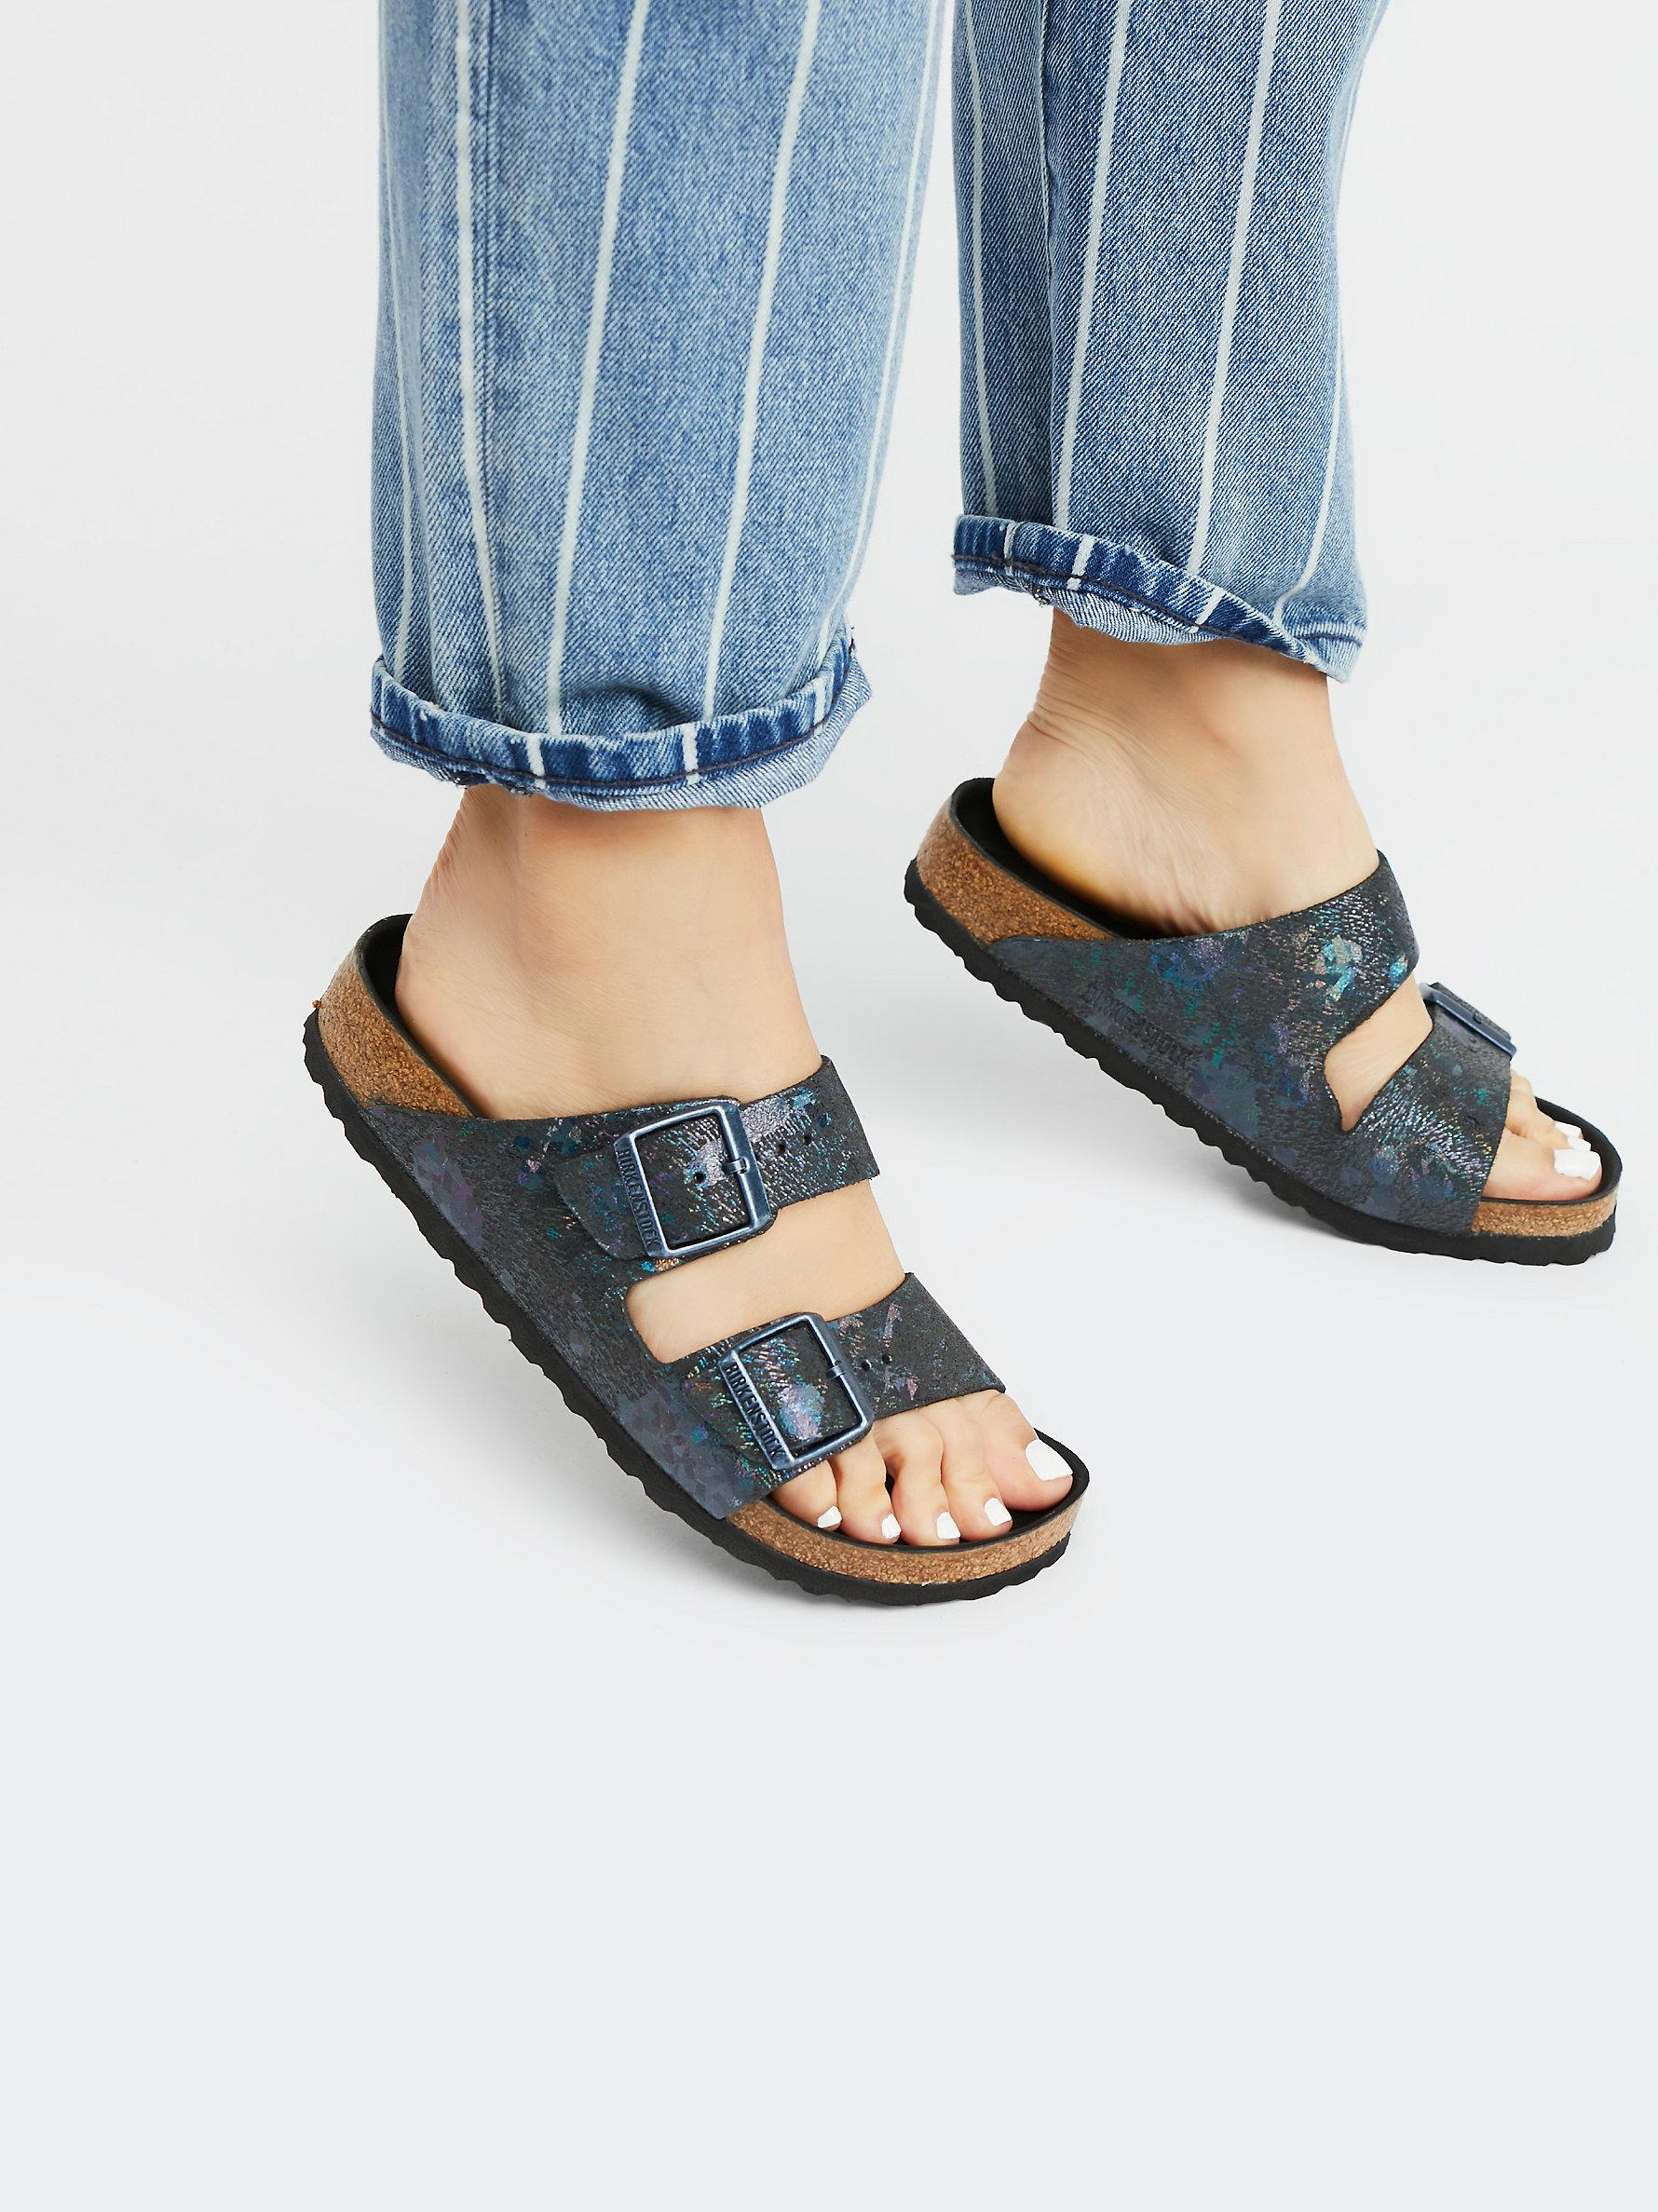 653c7c09687d1 Gallery. Previously sold at  Free People · Women s Birkenstock Arizona ...